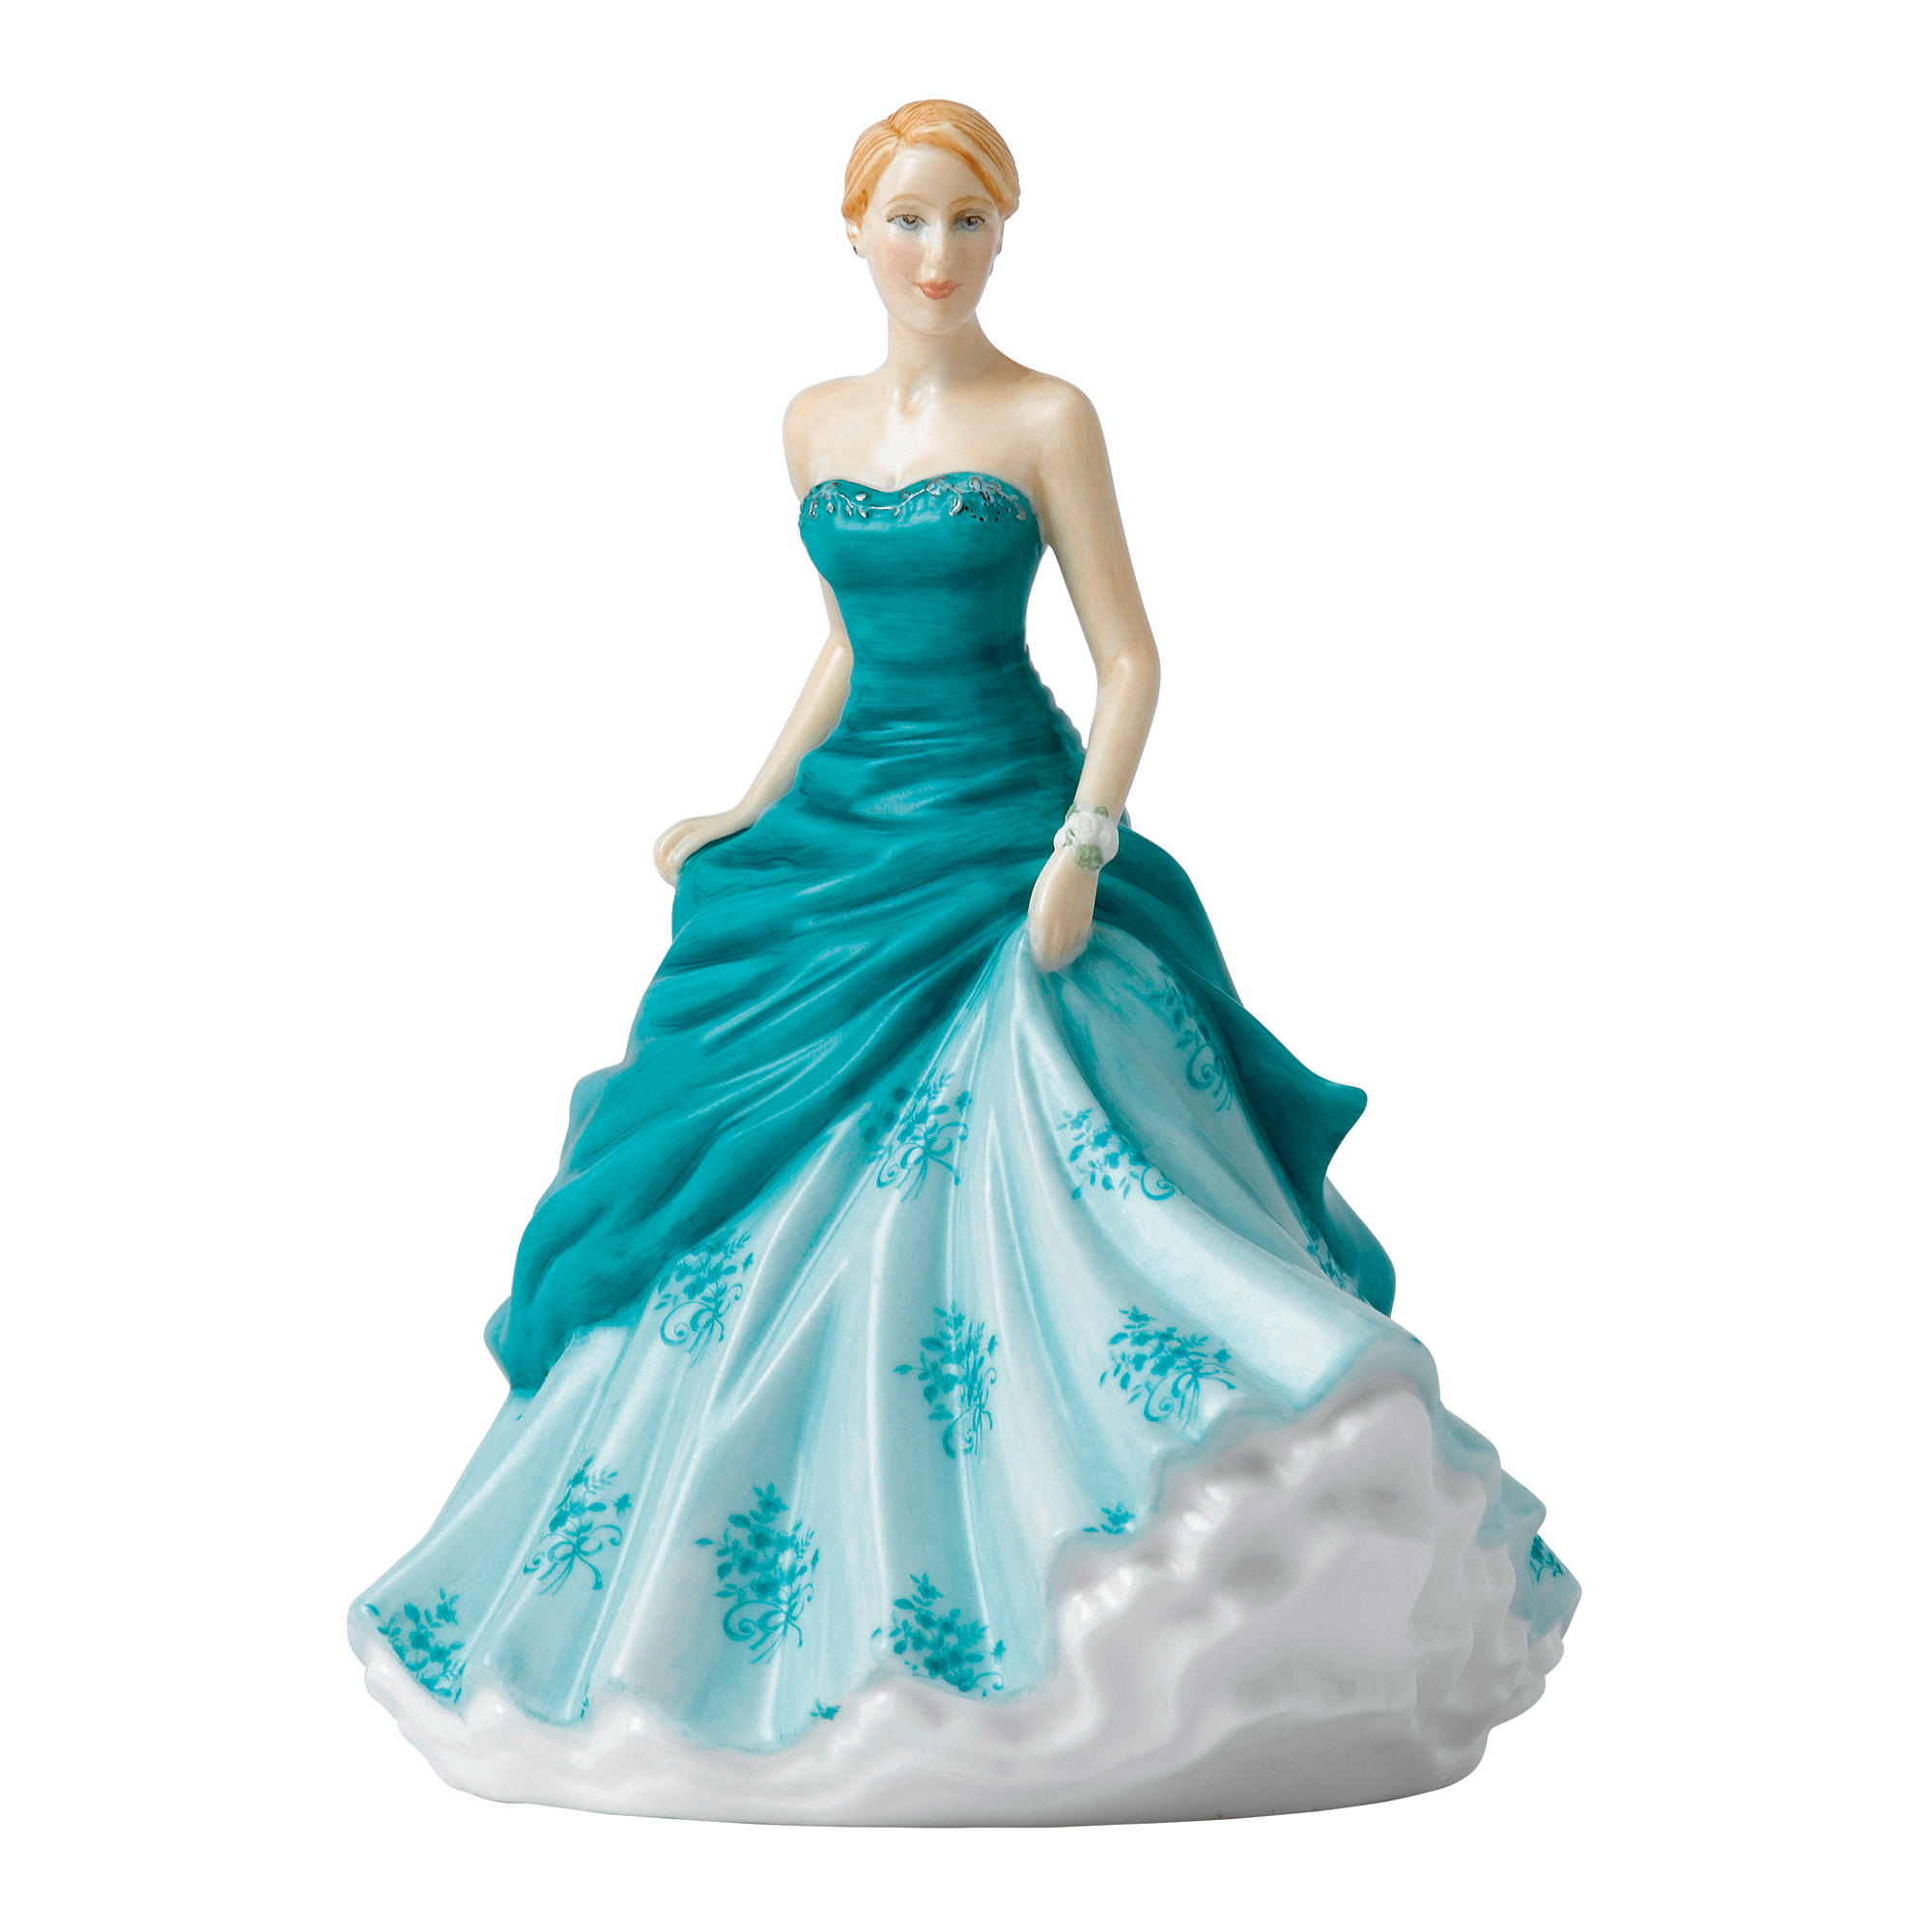 Abigail HN5773 - 2016 Petite Figure of the Year - Royal Doulton Figurine